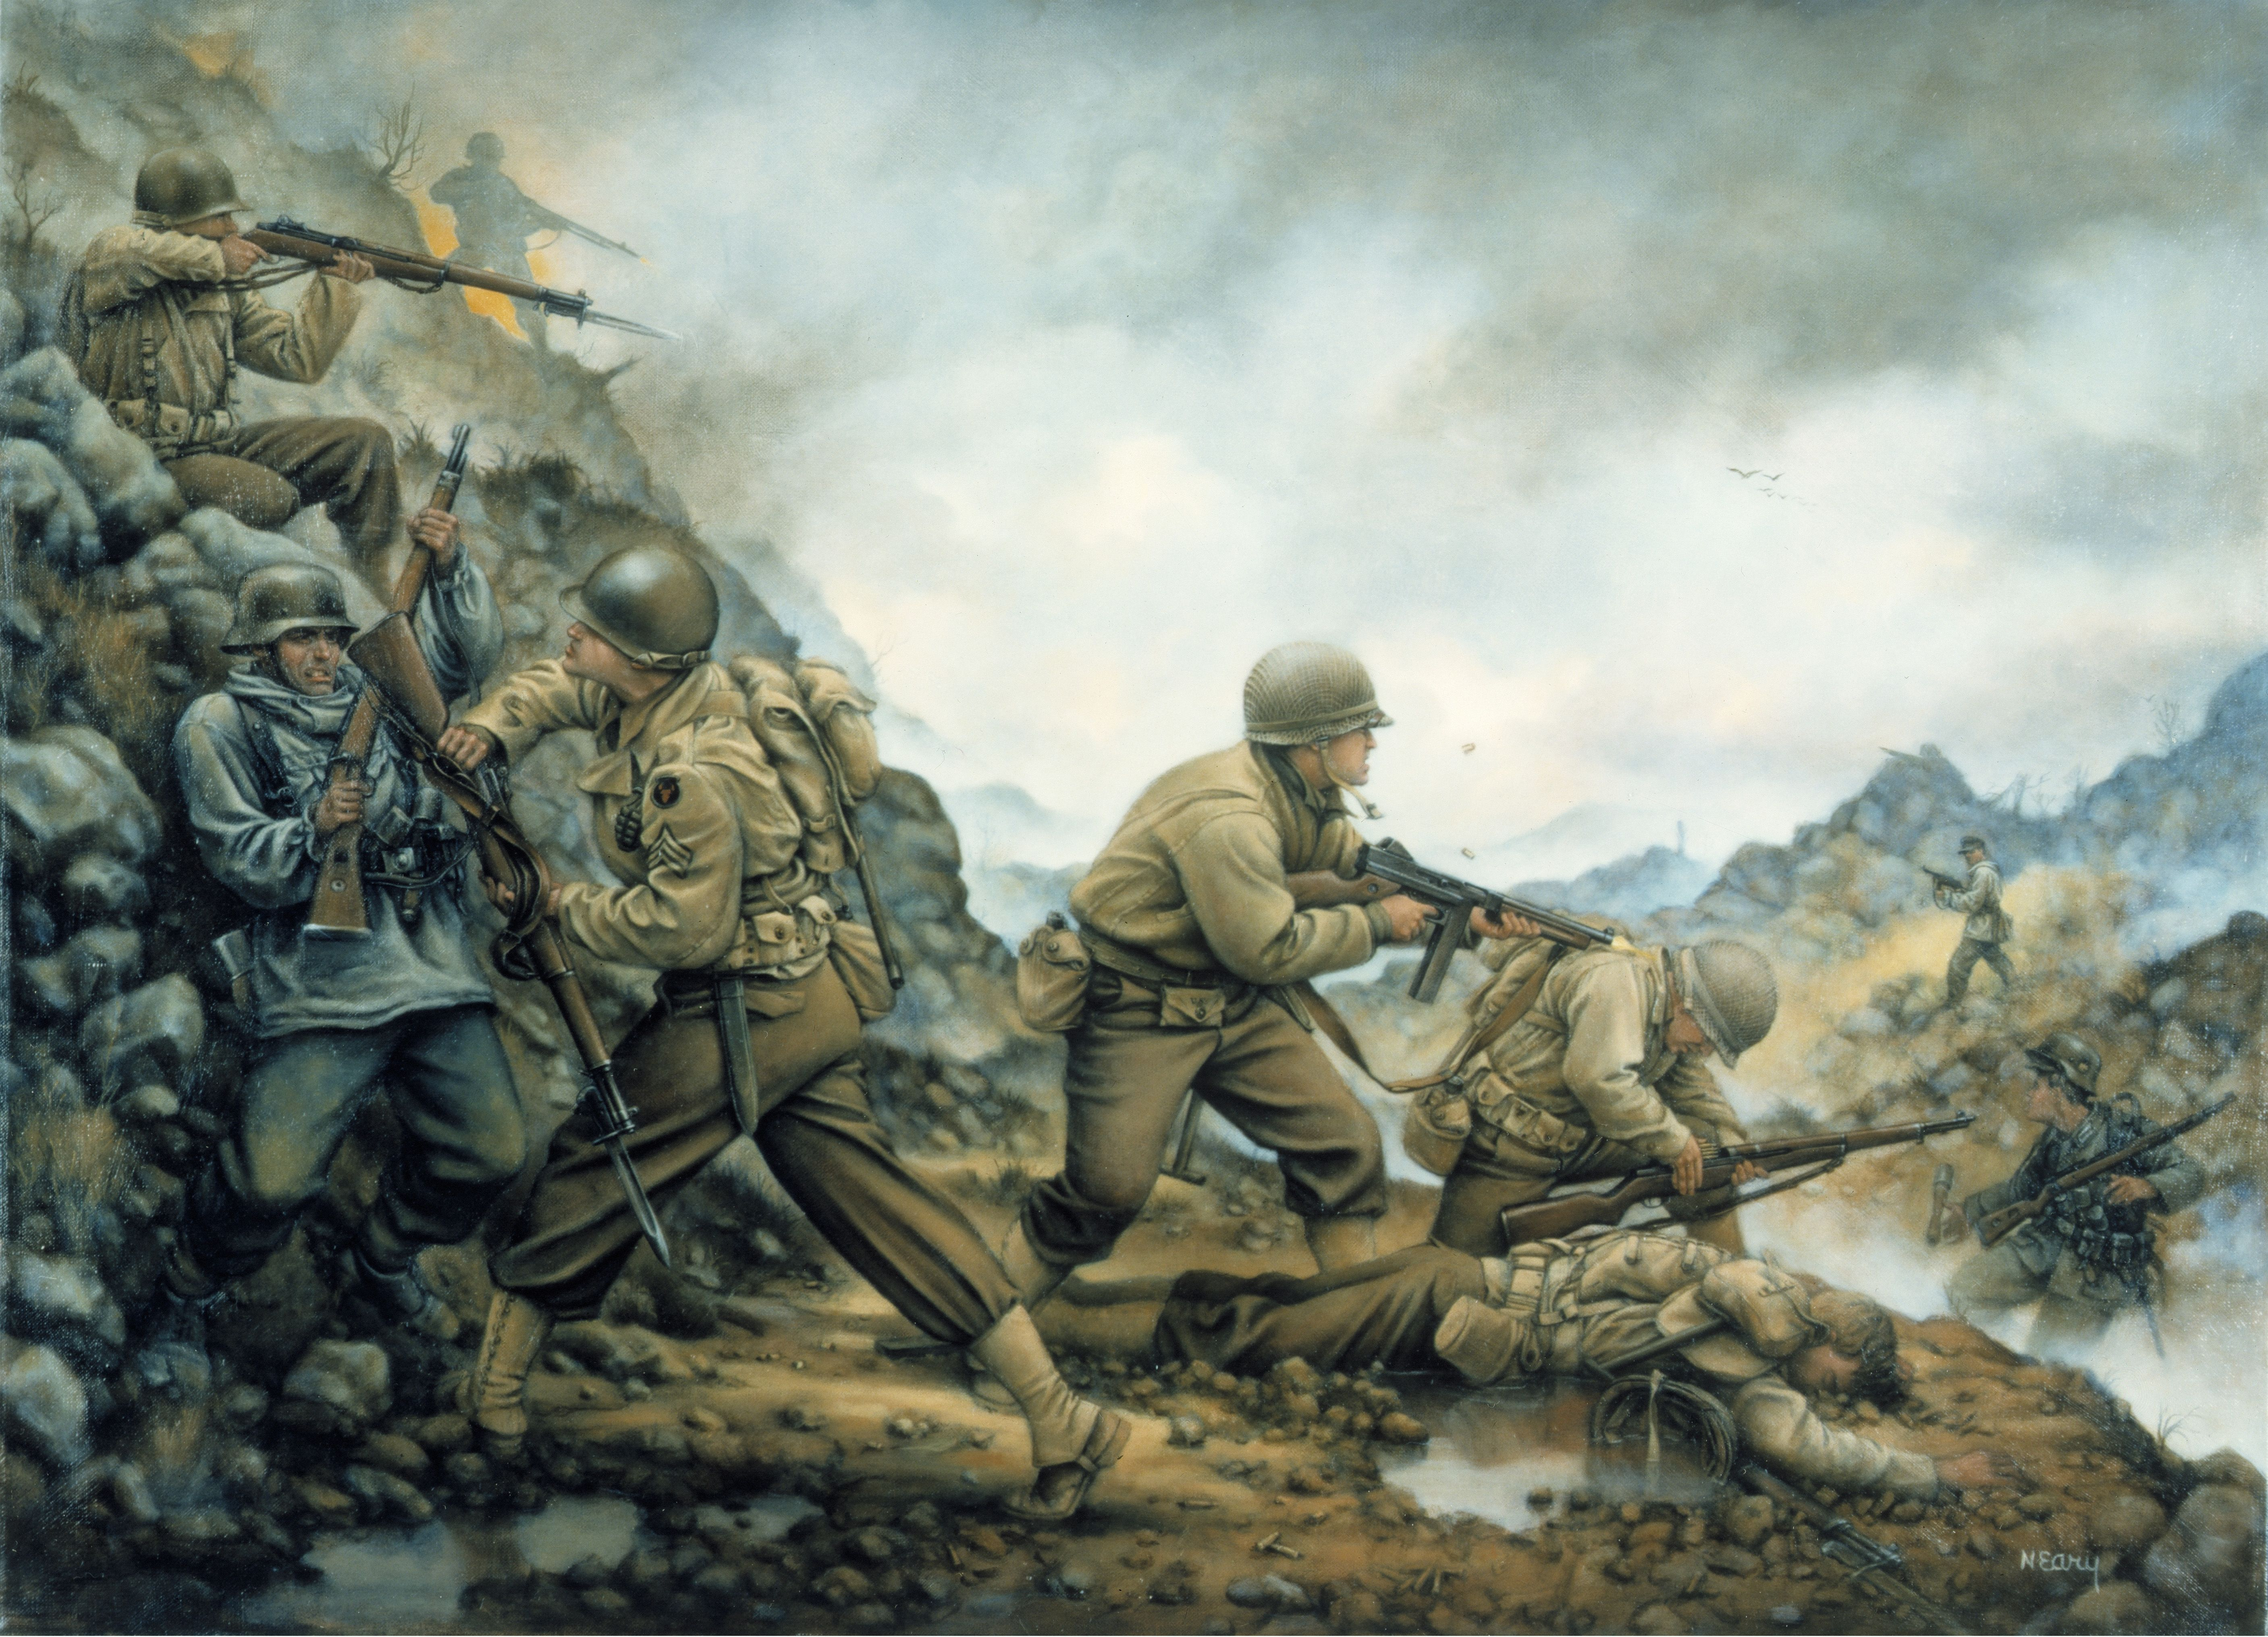 Day reenactment ww ii pictures pinterest - Battle Of Pantano By Donna J Neary Wwiimilitary